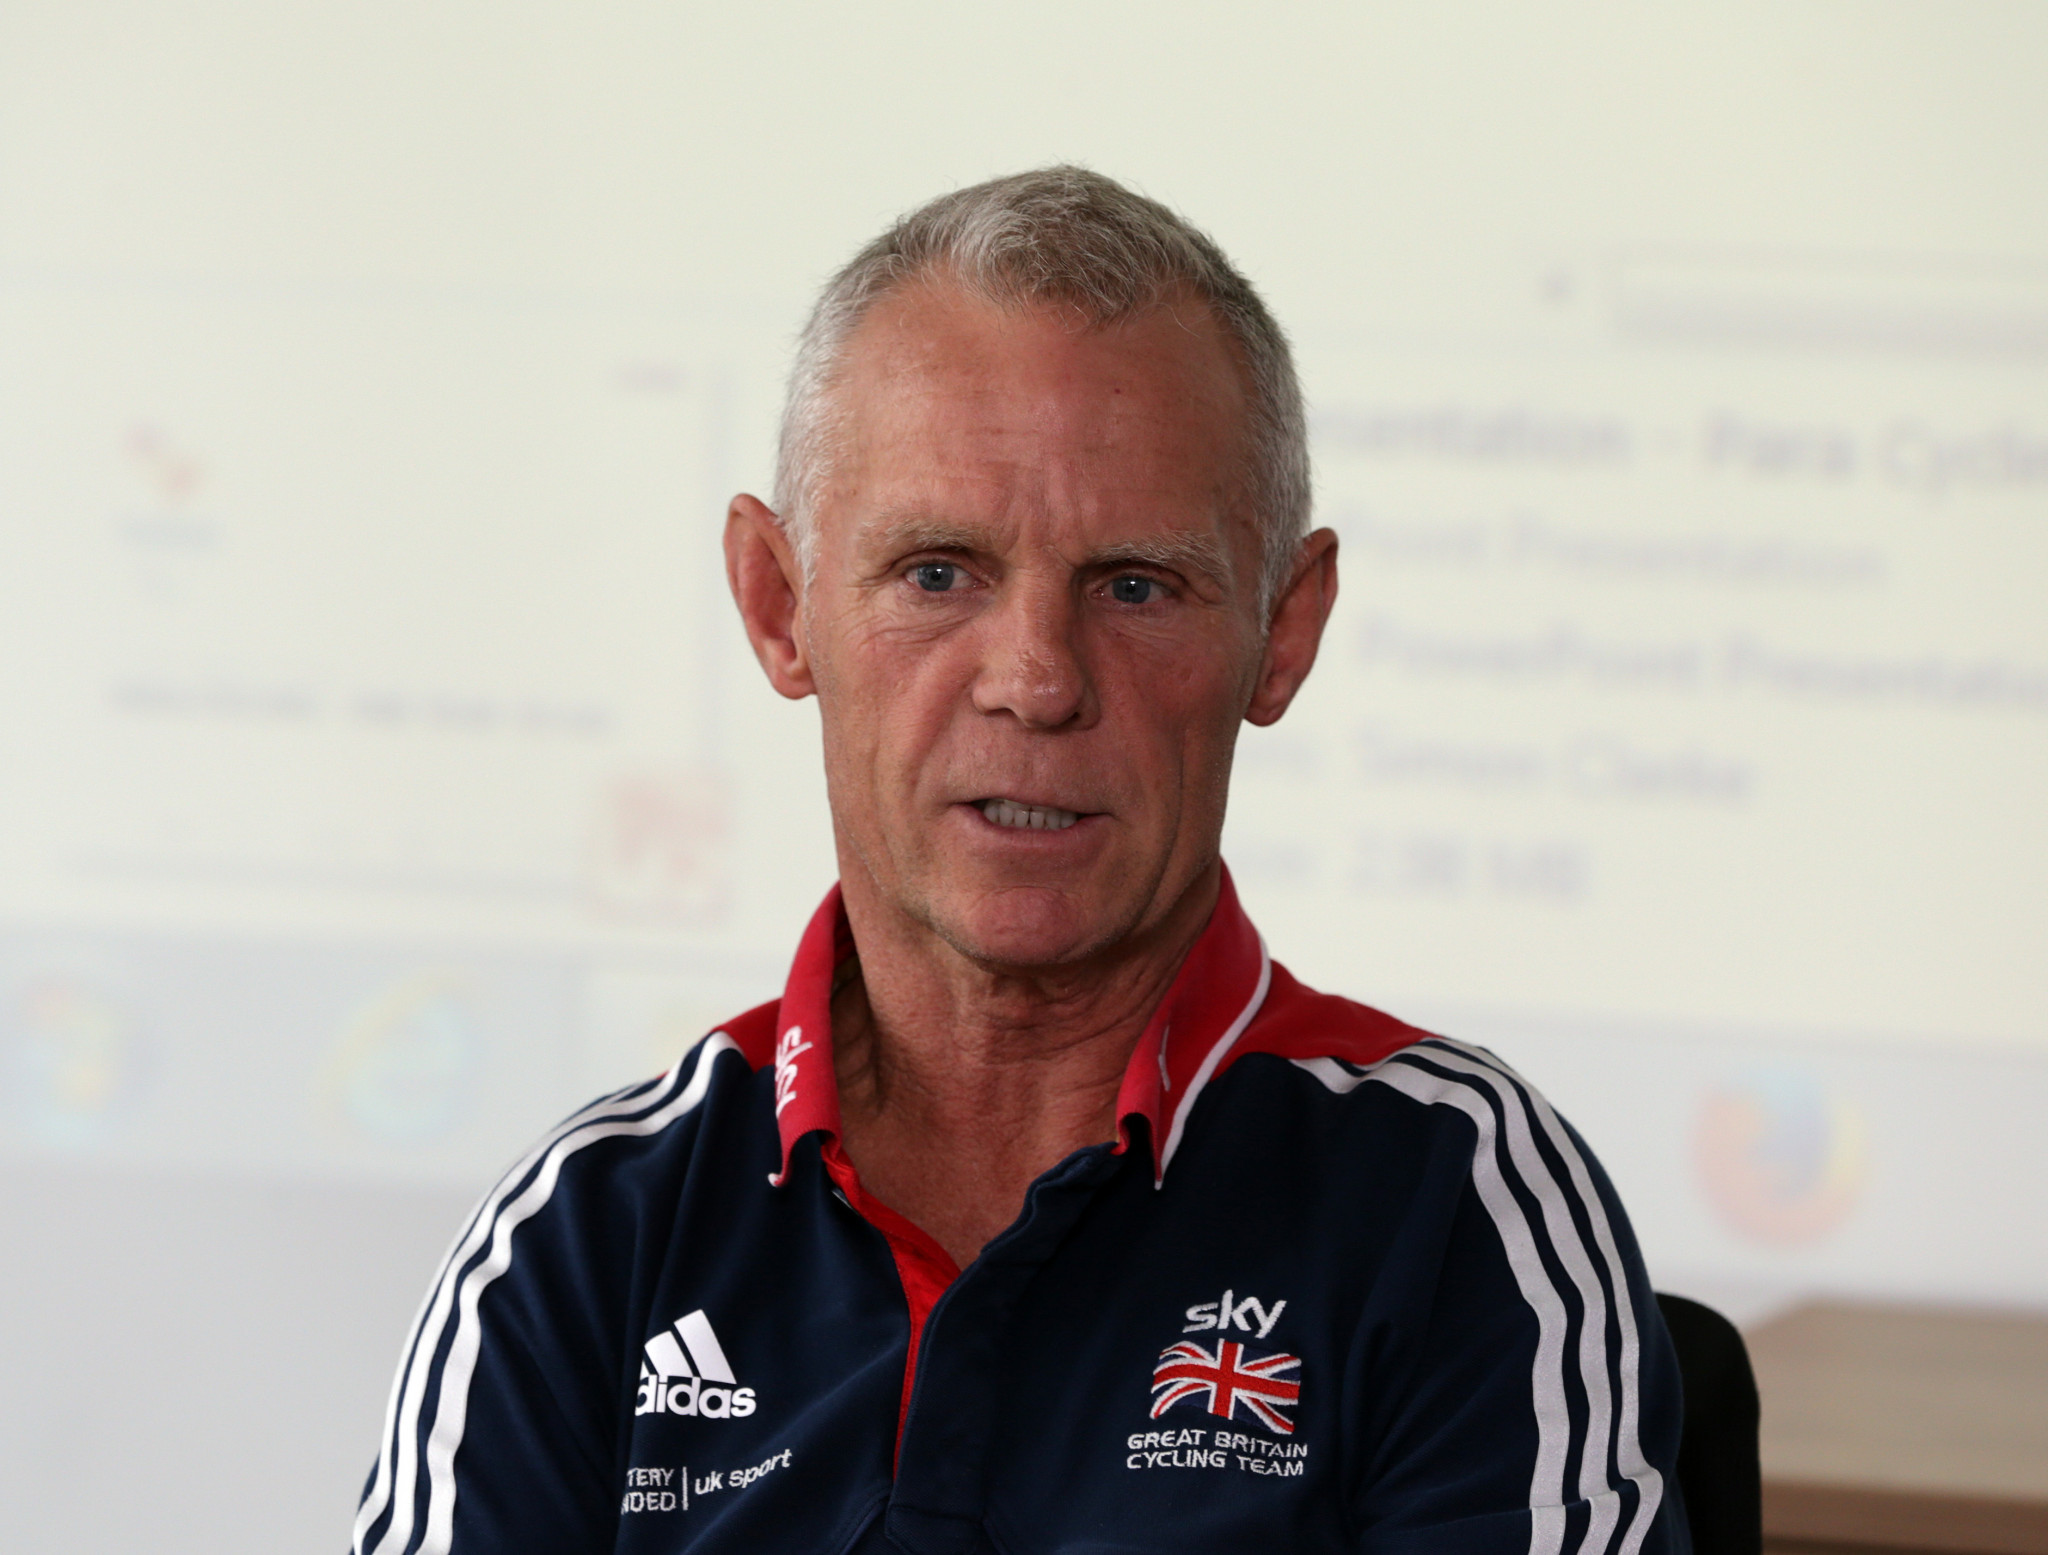 Richard Freeman has been involved in a dispute with ex-British Cycling coach Shane Sutton ©Getty Images